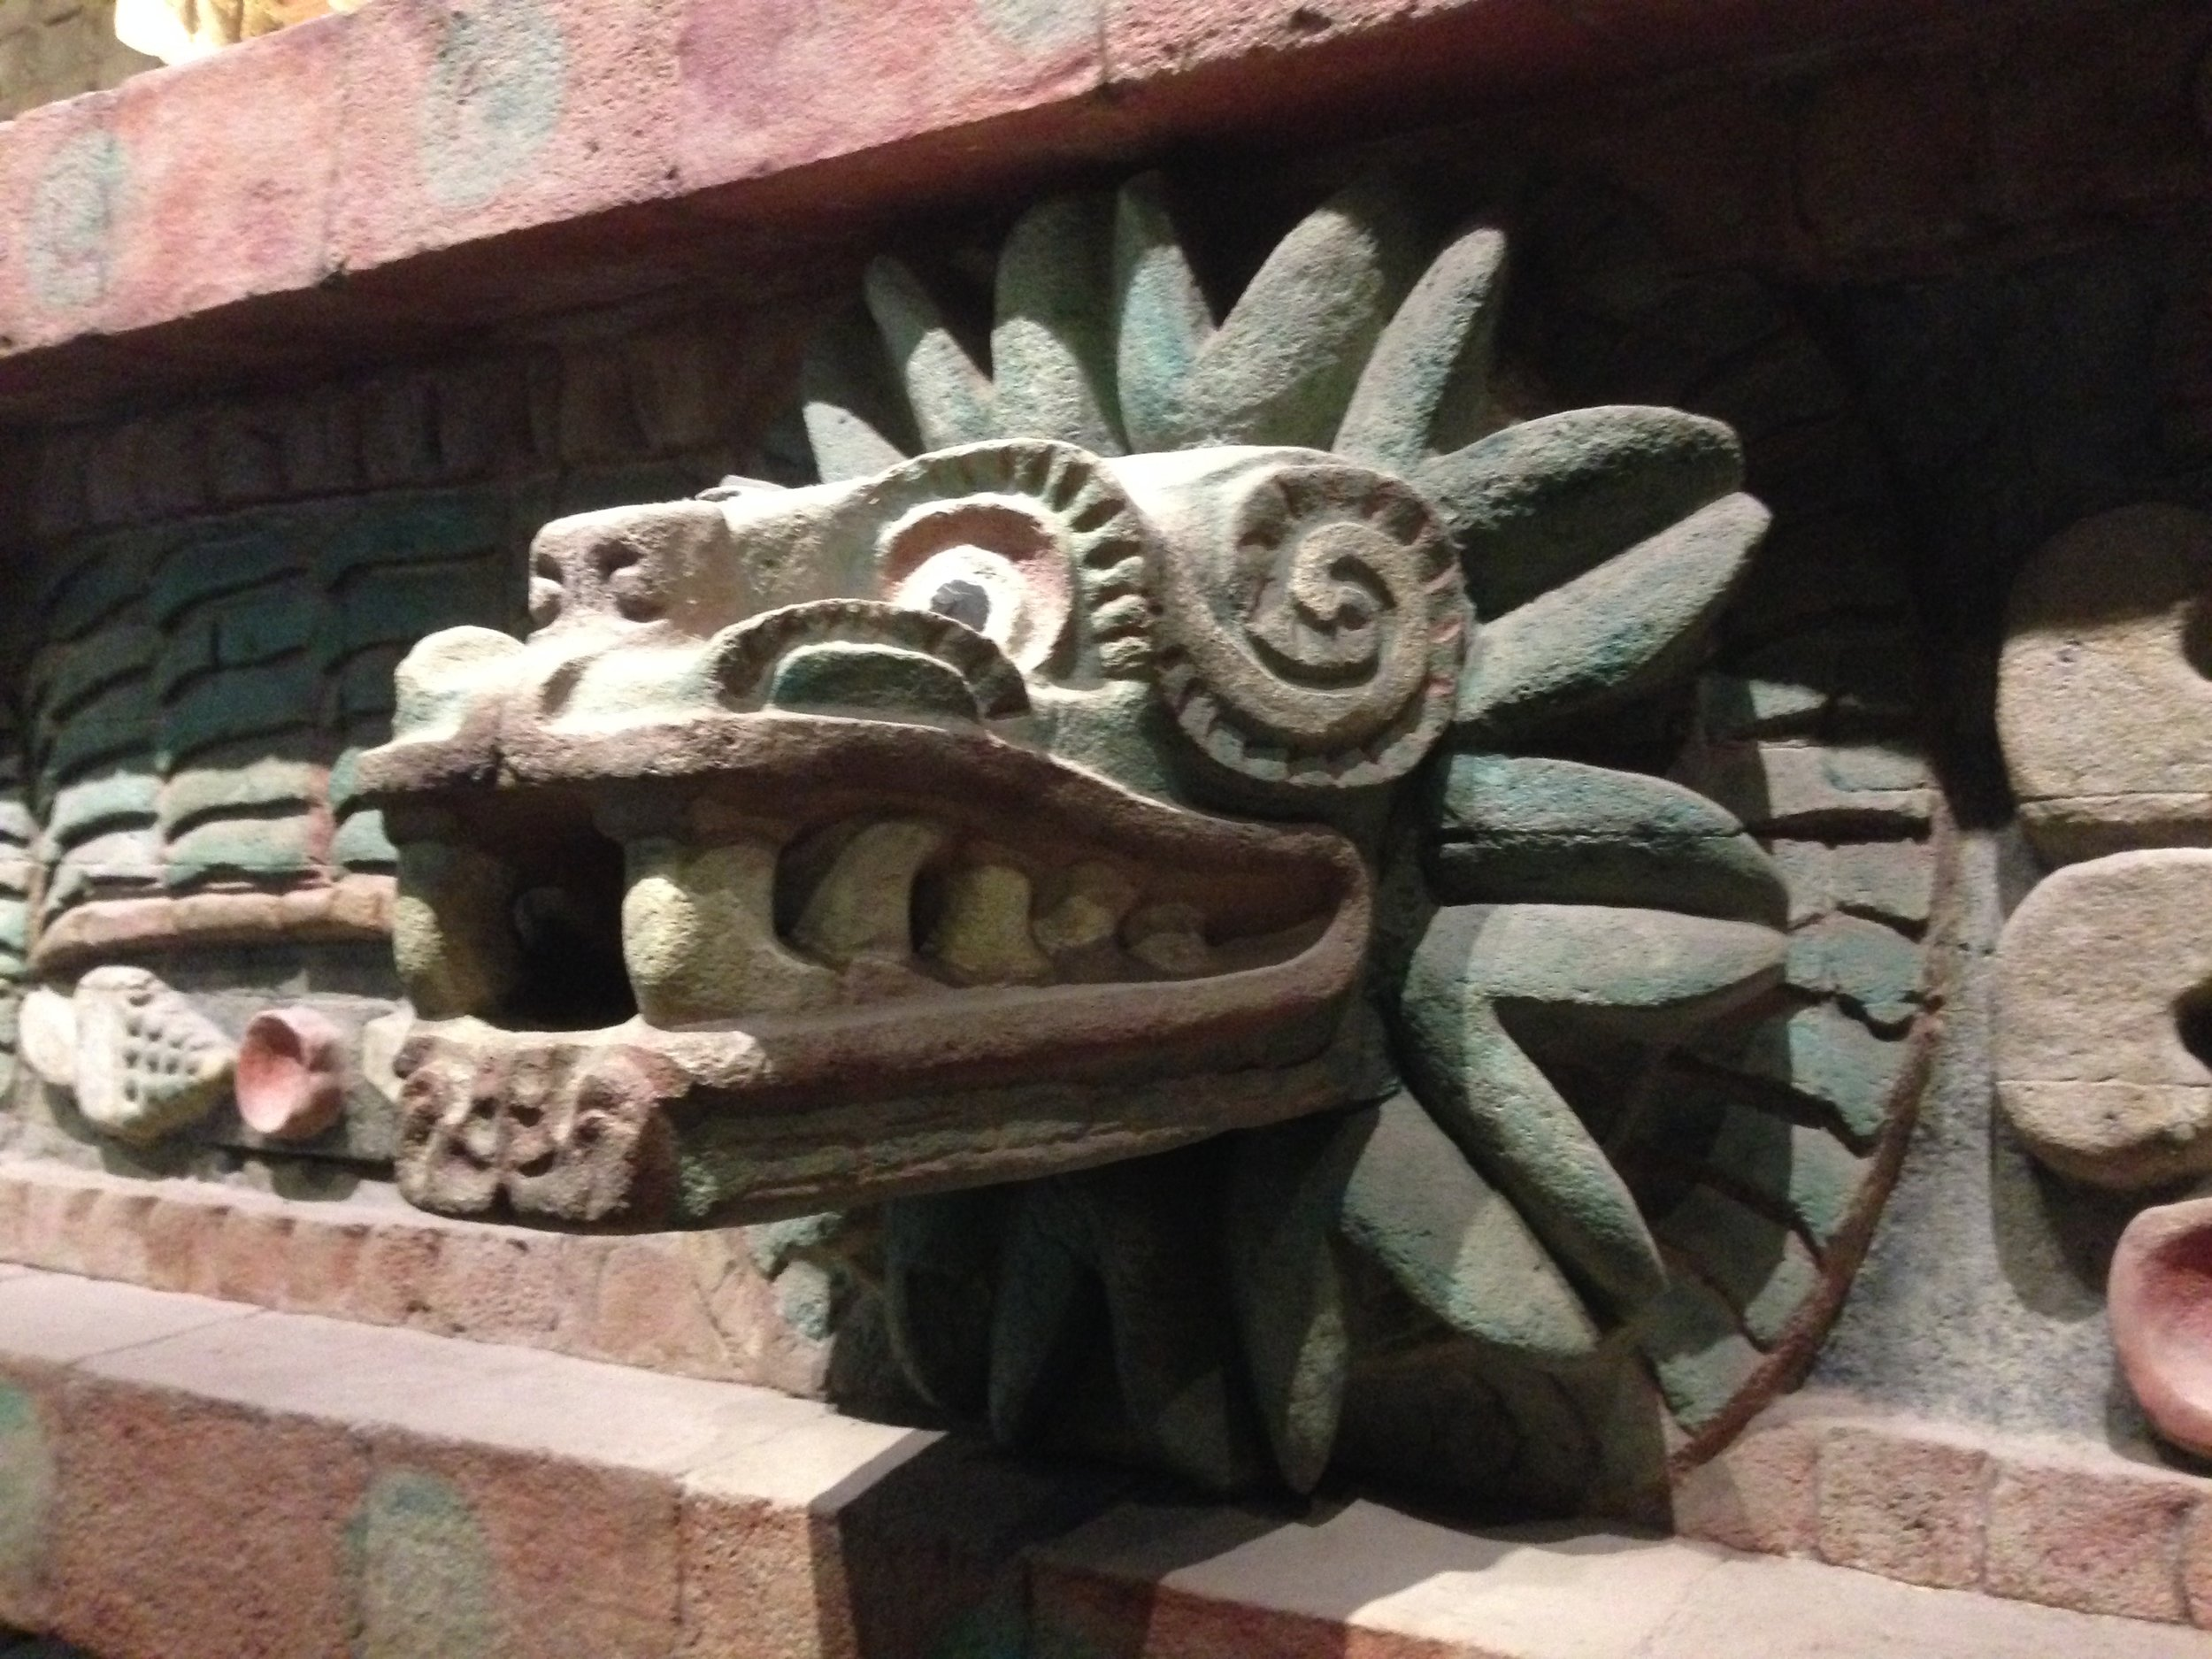 Exhibited at the Museum of Anthropology, Mexico City